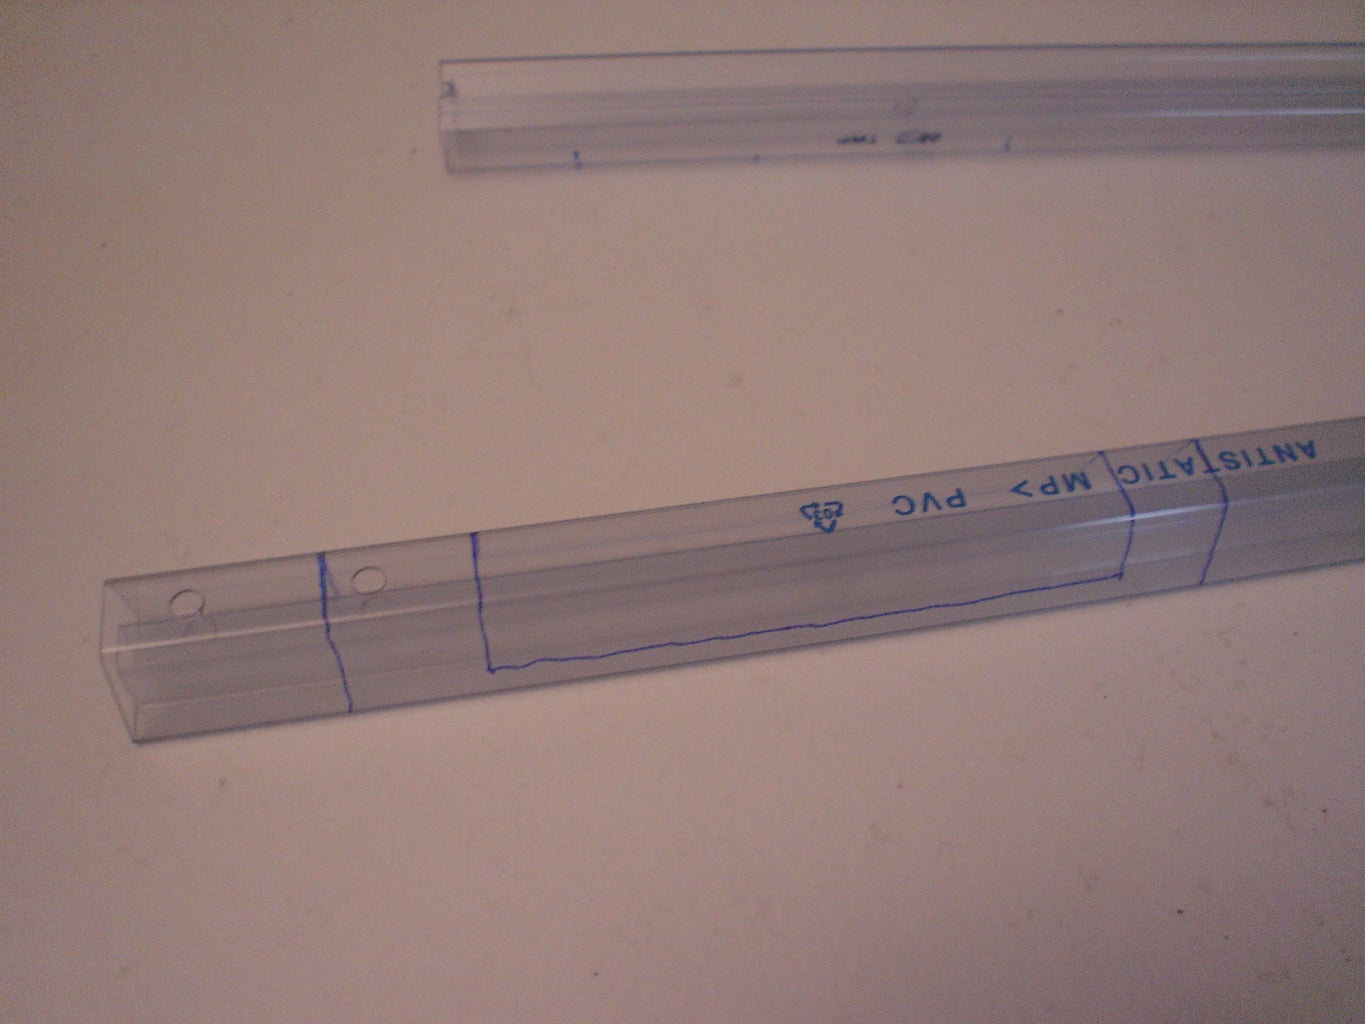 Antistatic Tube As a Case?